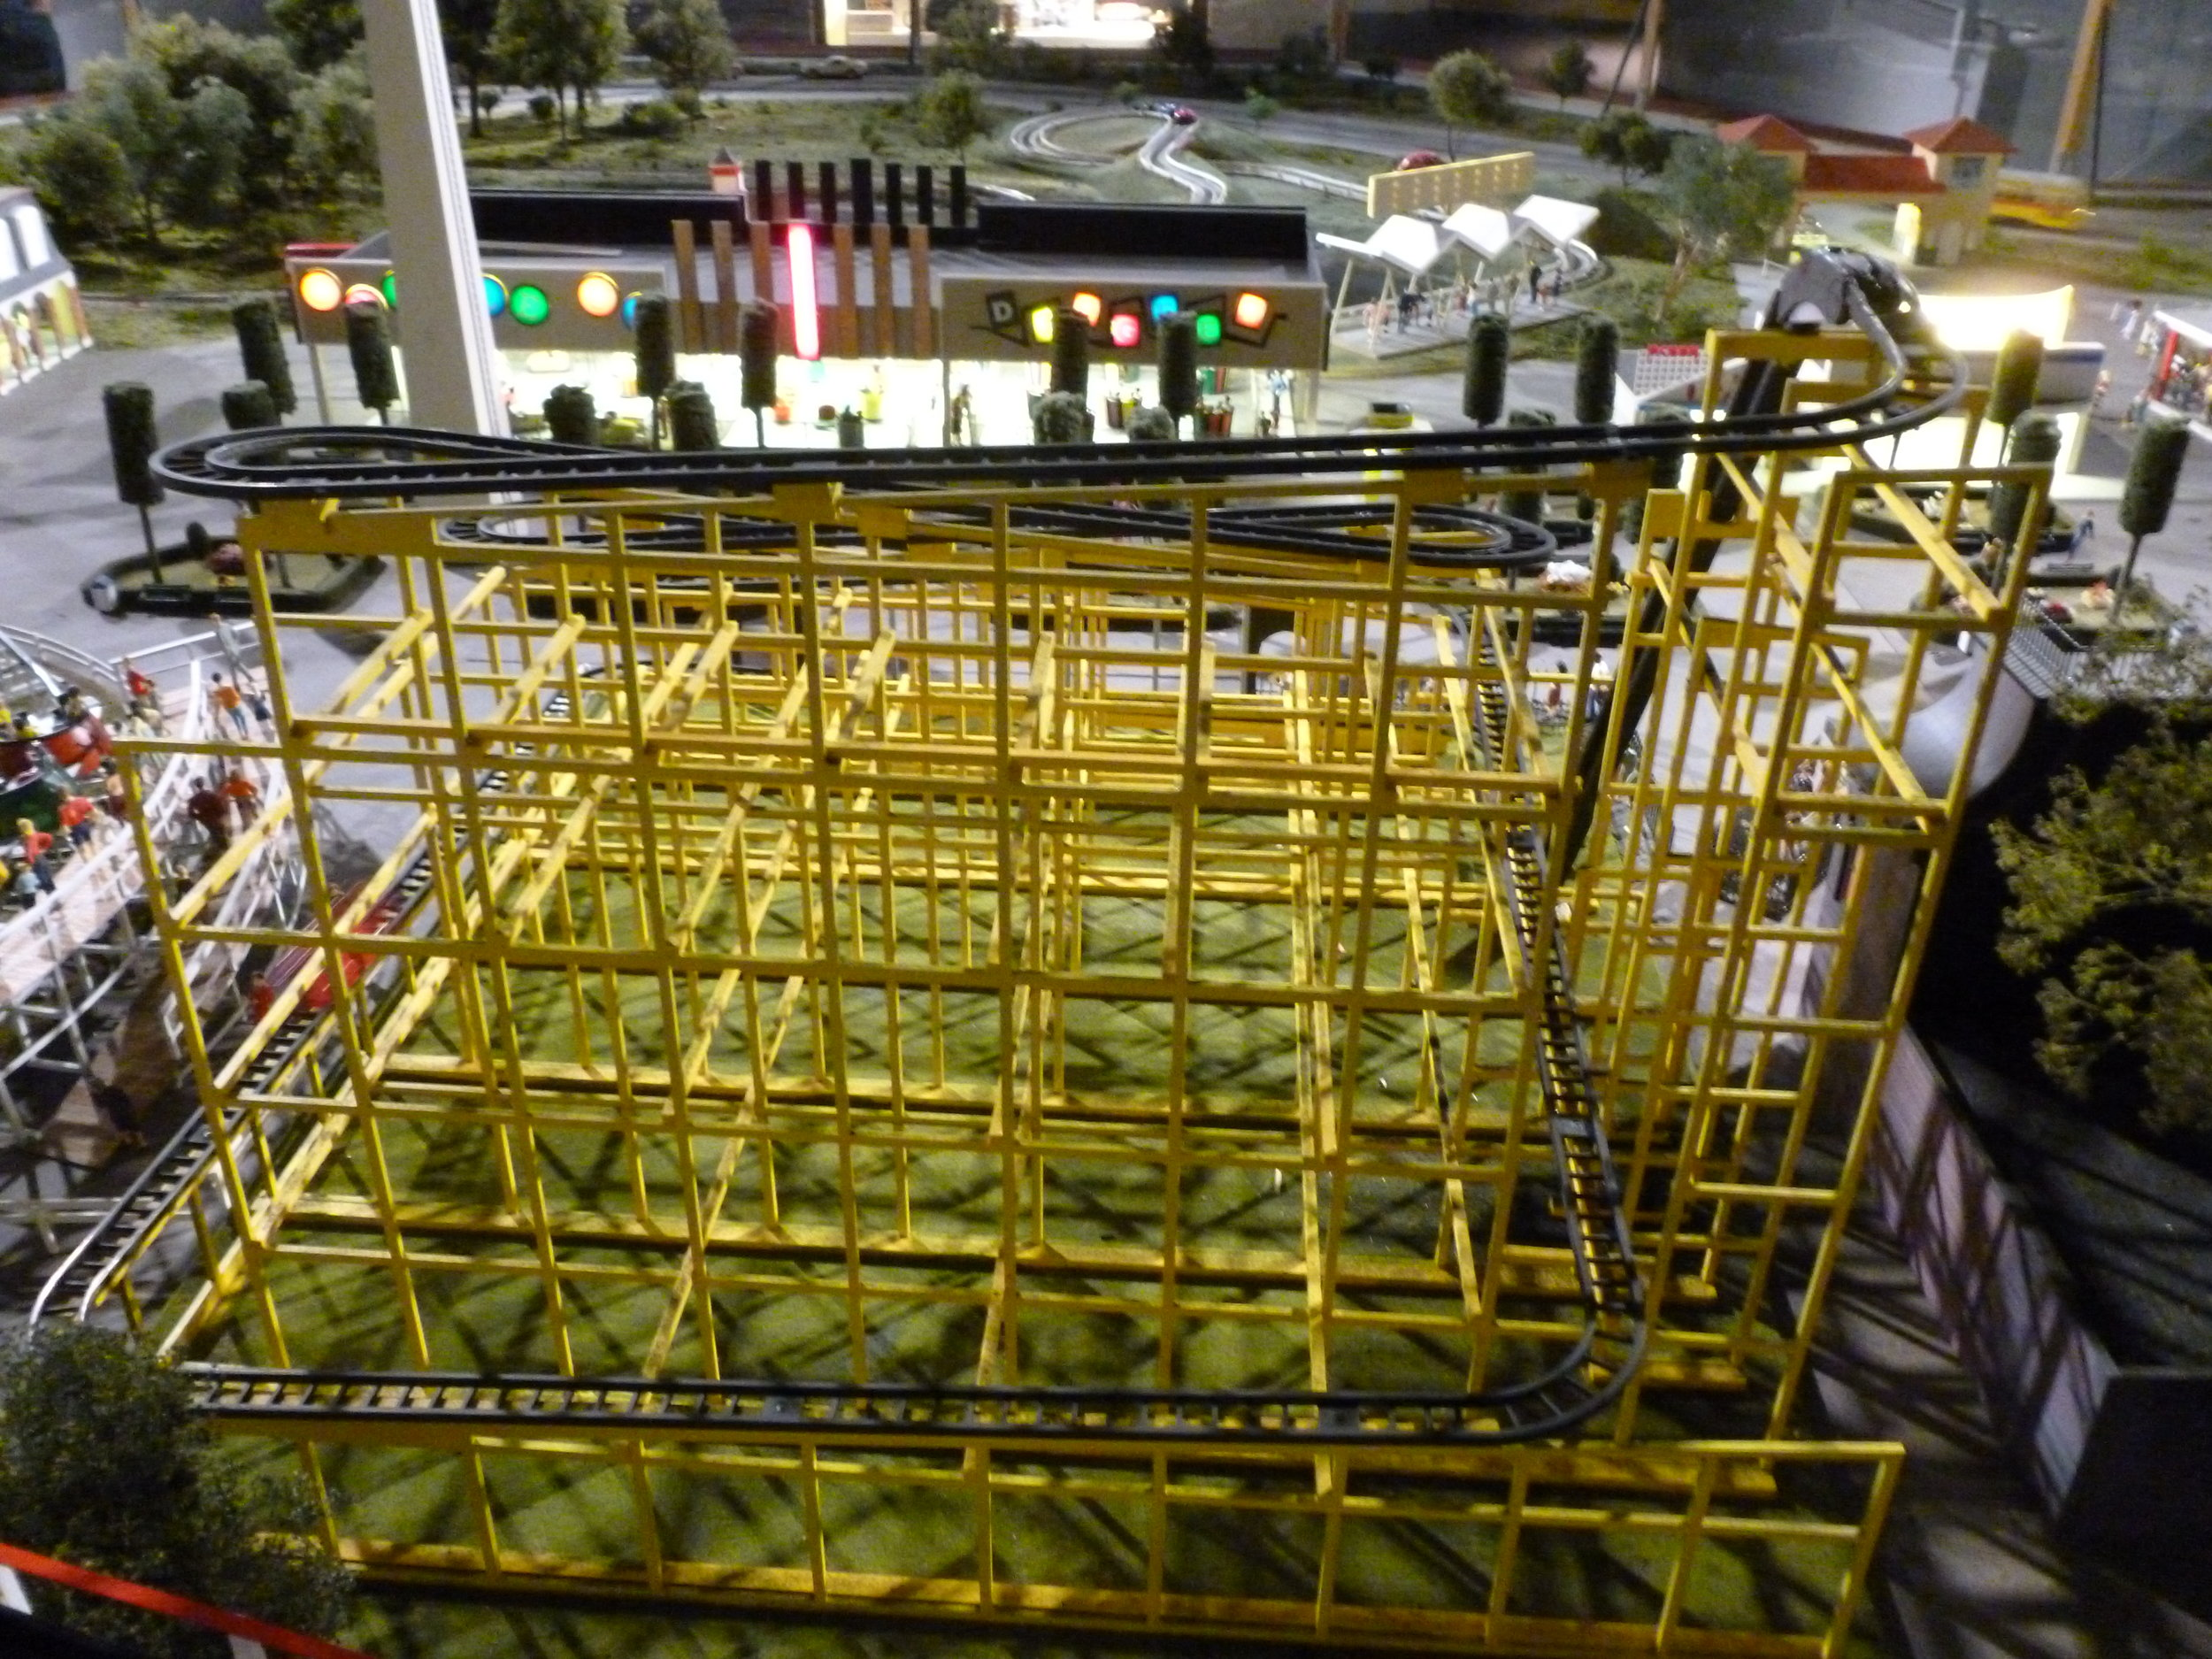 Close up view from the backside of the Wild Mouse Model.